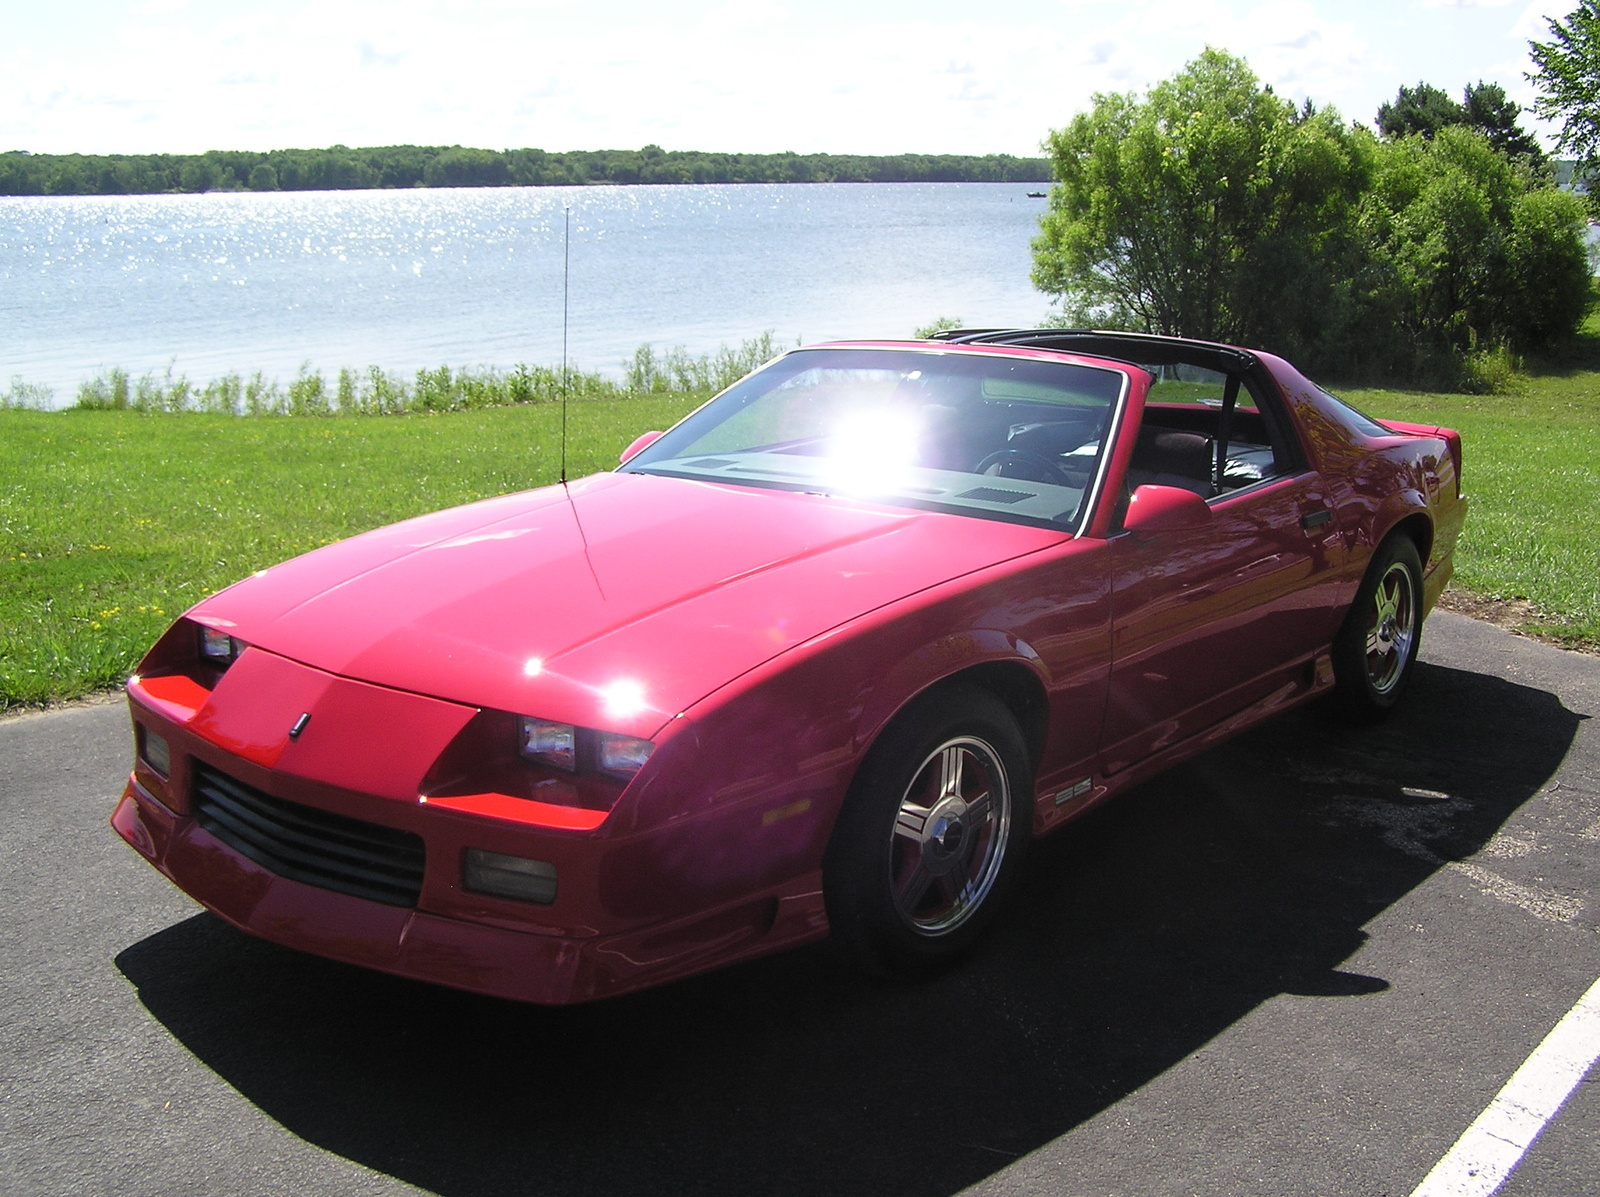 1992 Chevrolet Camaro picture